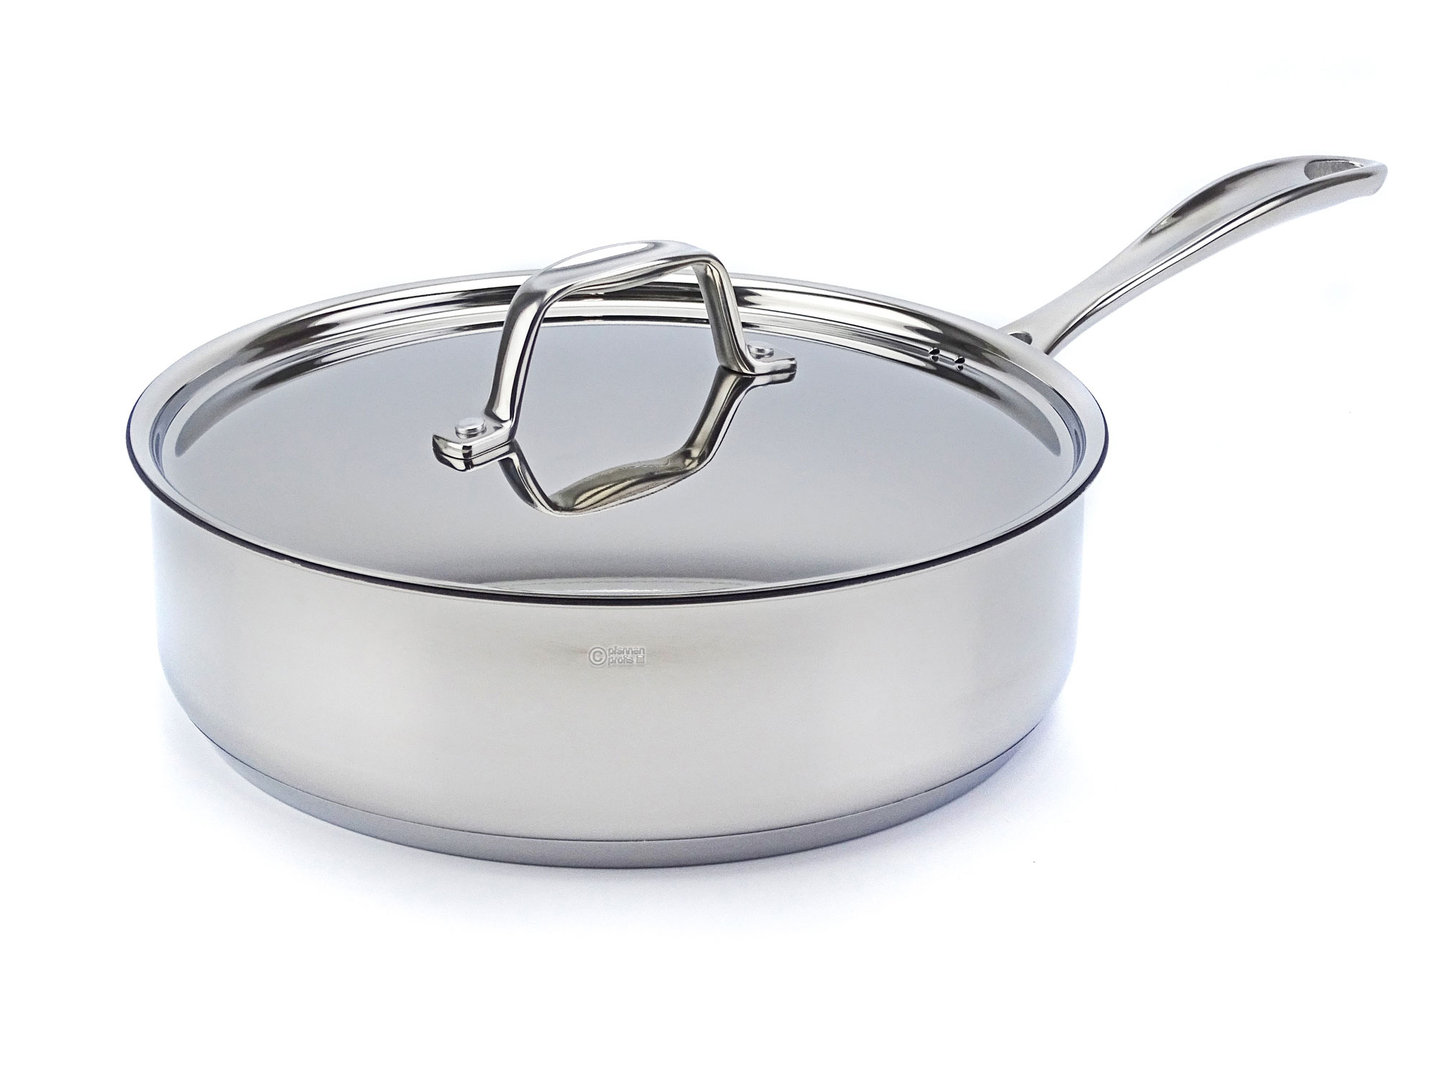 BEKA deep frypan CHEF 24 cm uncoated with lid stainless steel